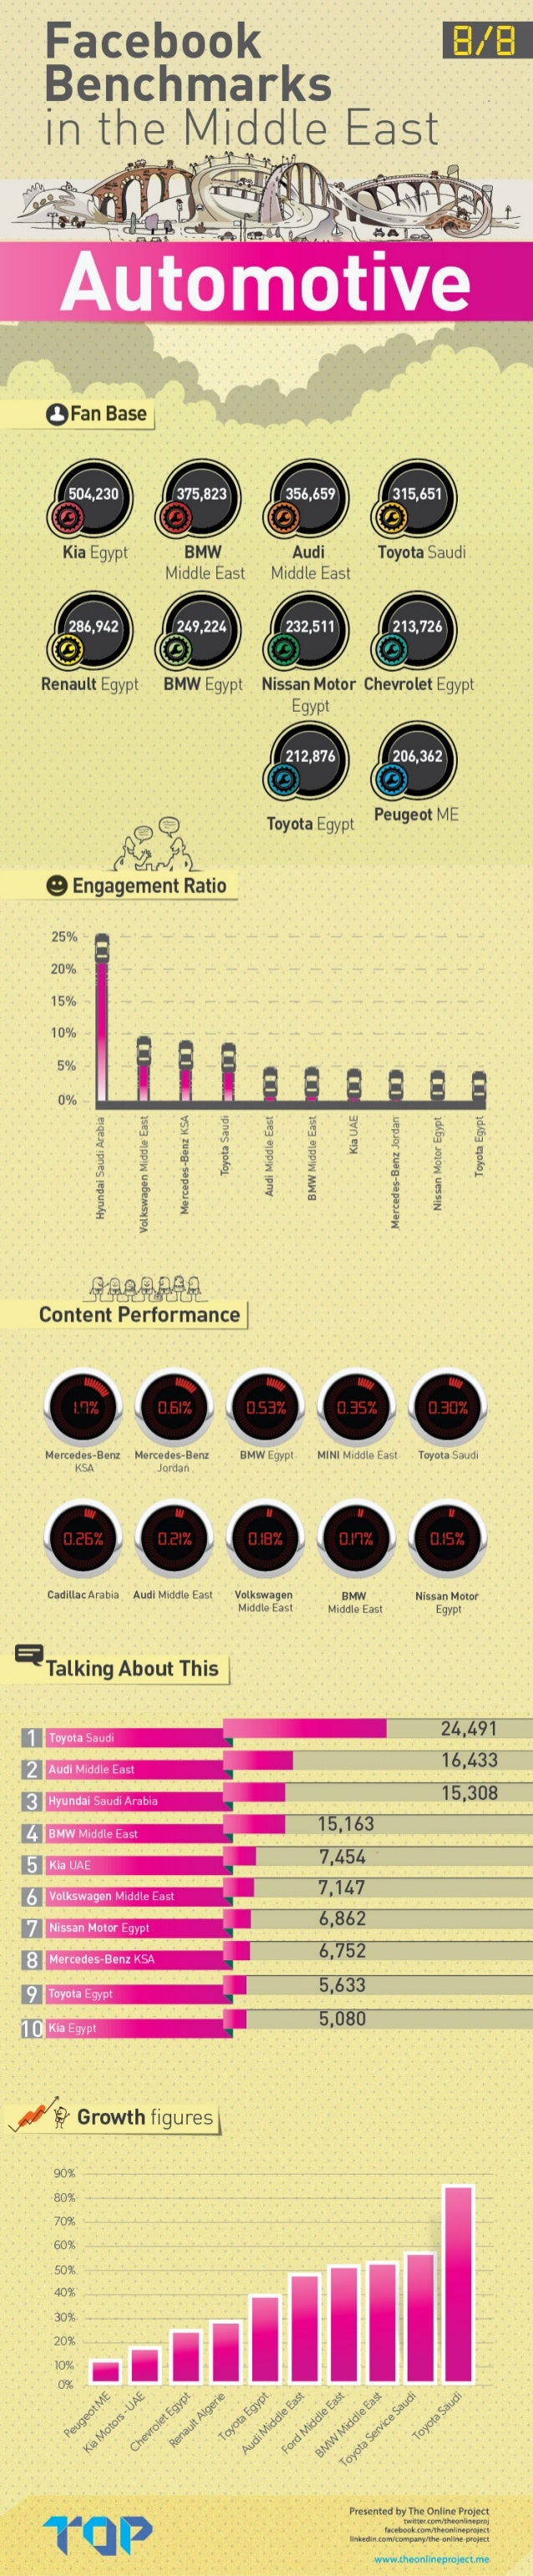 Facebook Benchmarks in the Middle East: Automotive